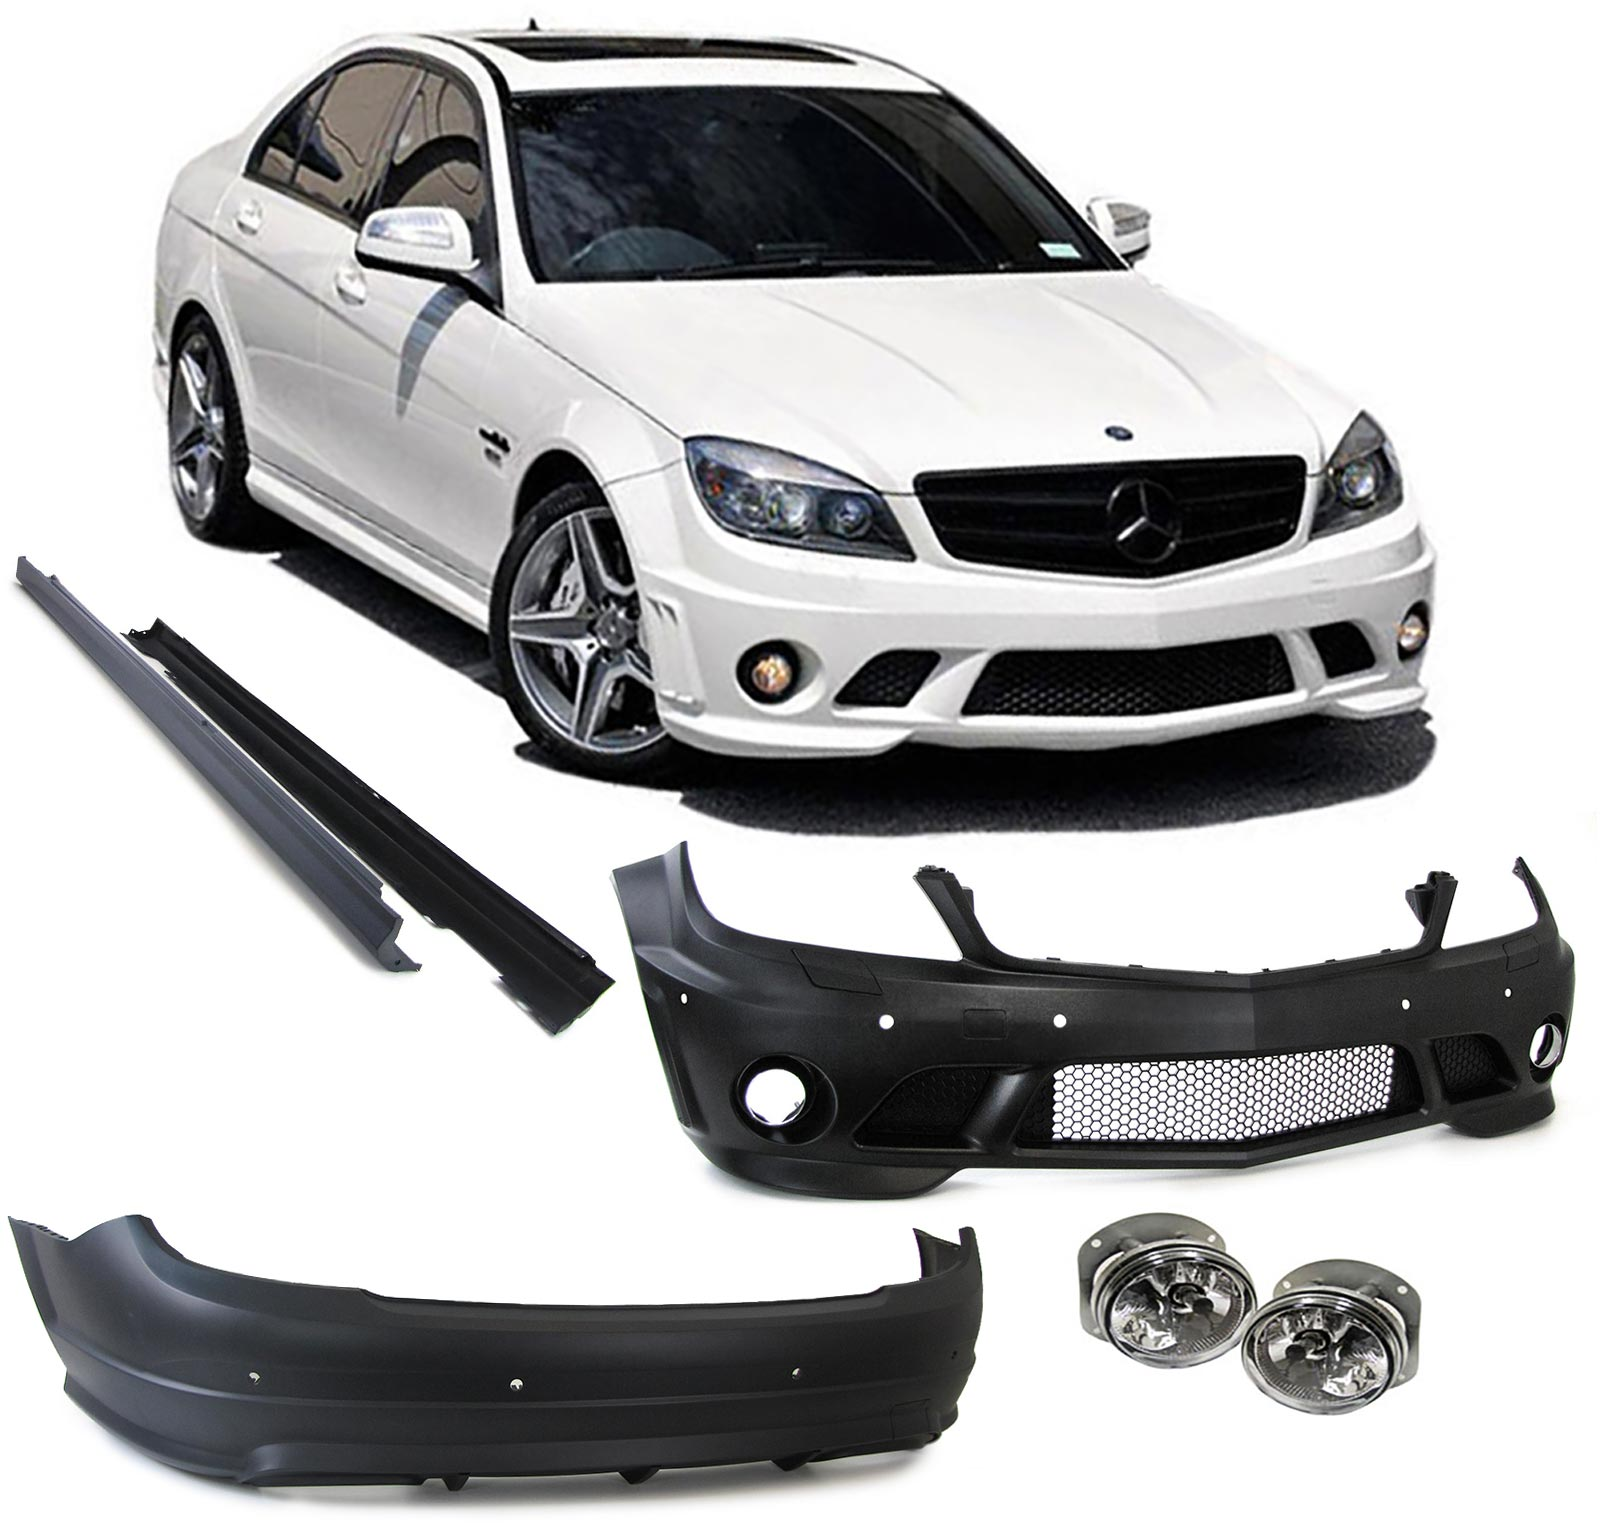 body kit mercedes benz c class w204 c63 amg 2007 2012. Black Bedroom Furniture Sets. Home Design Ideas